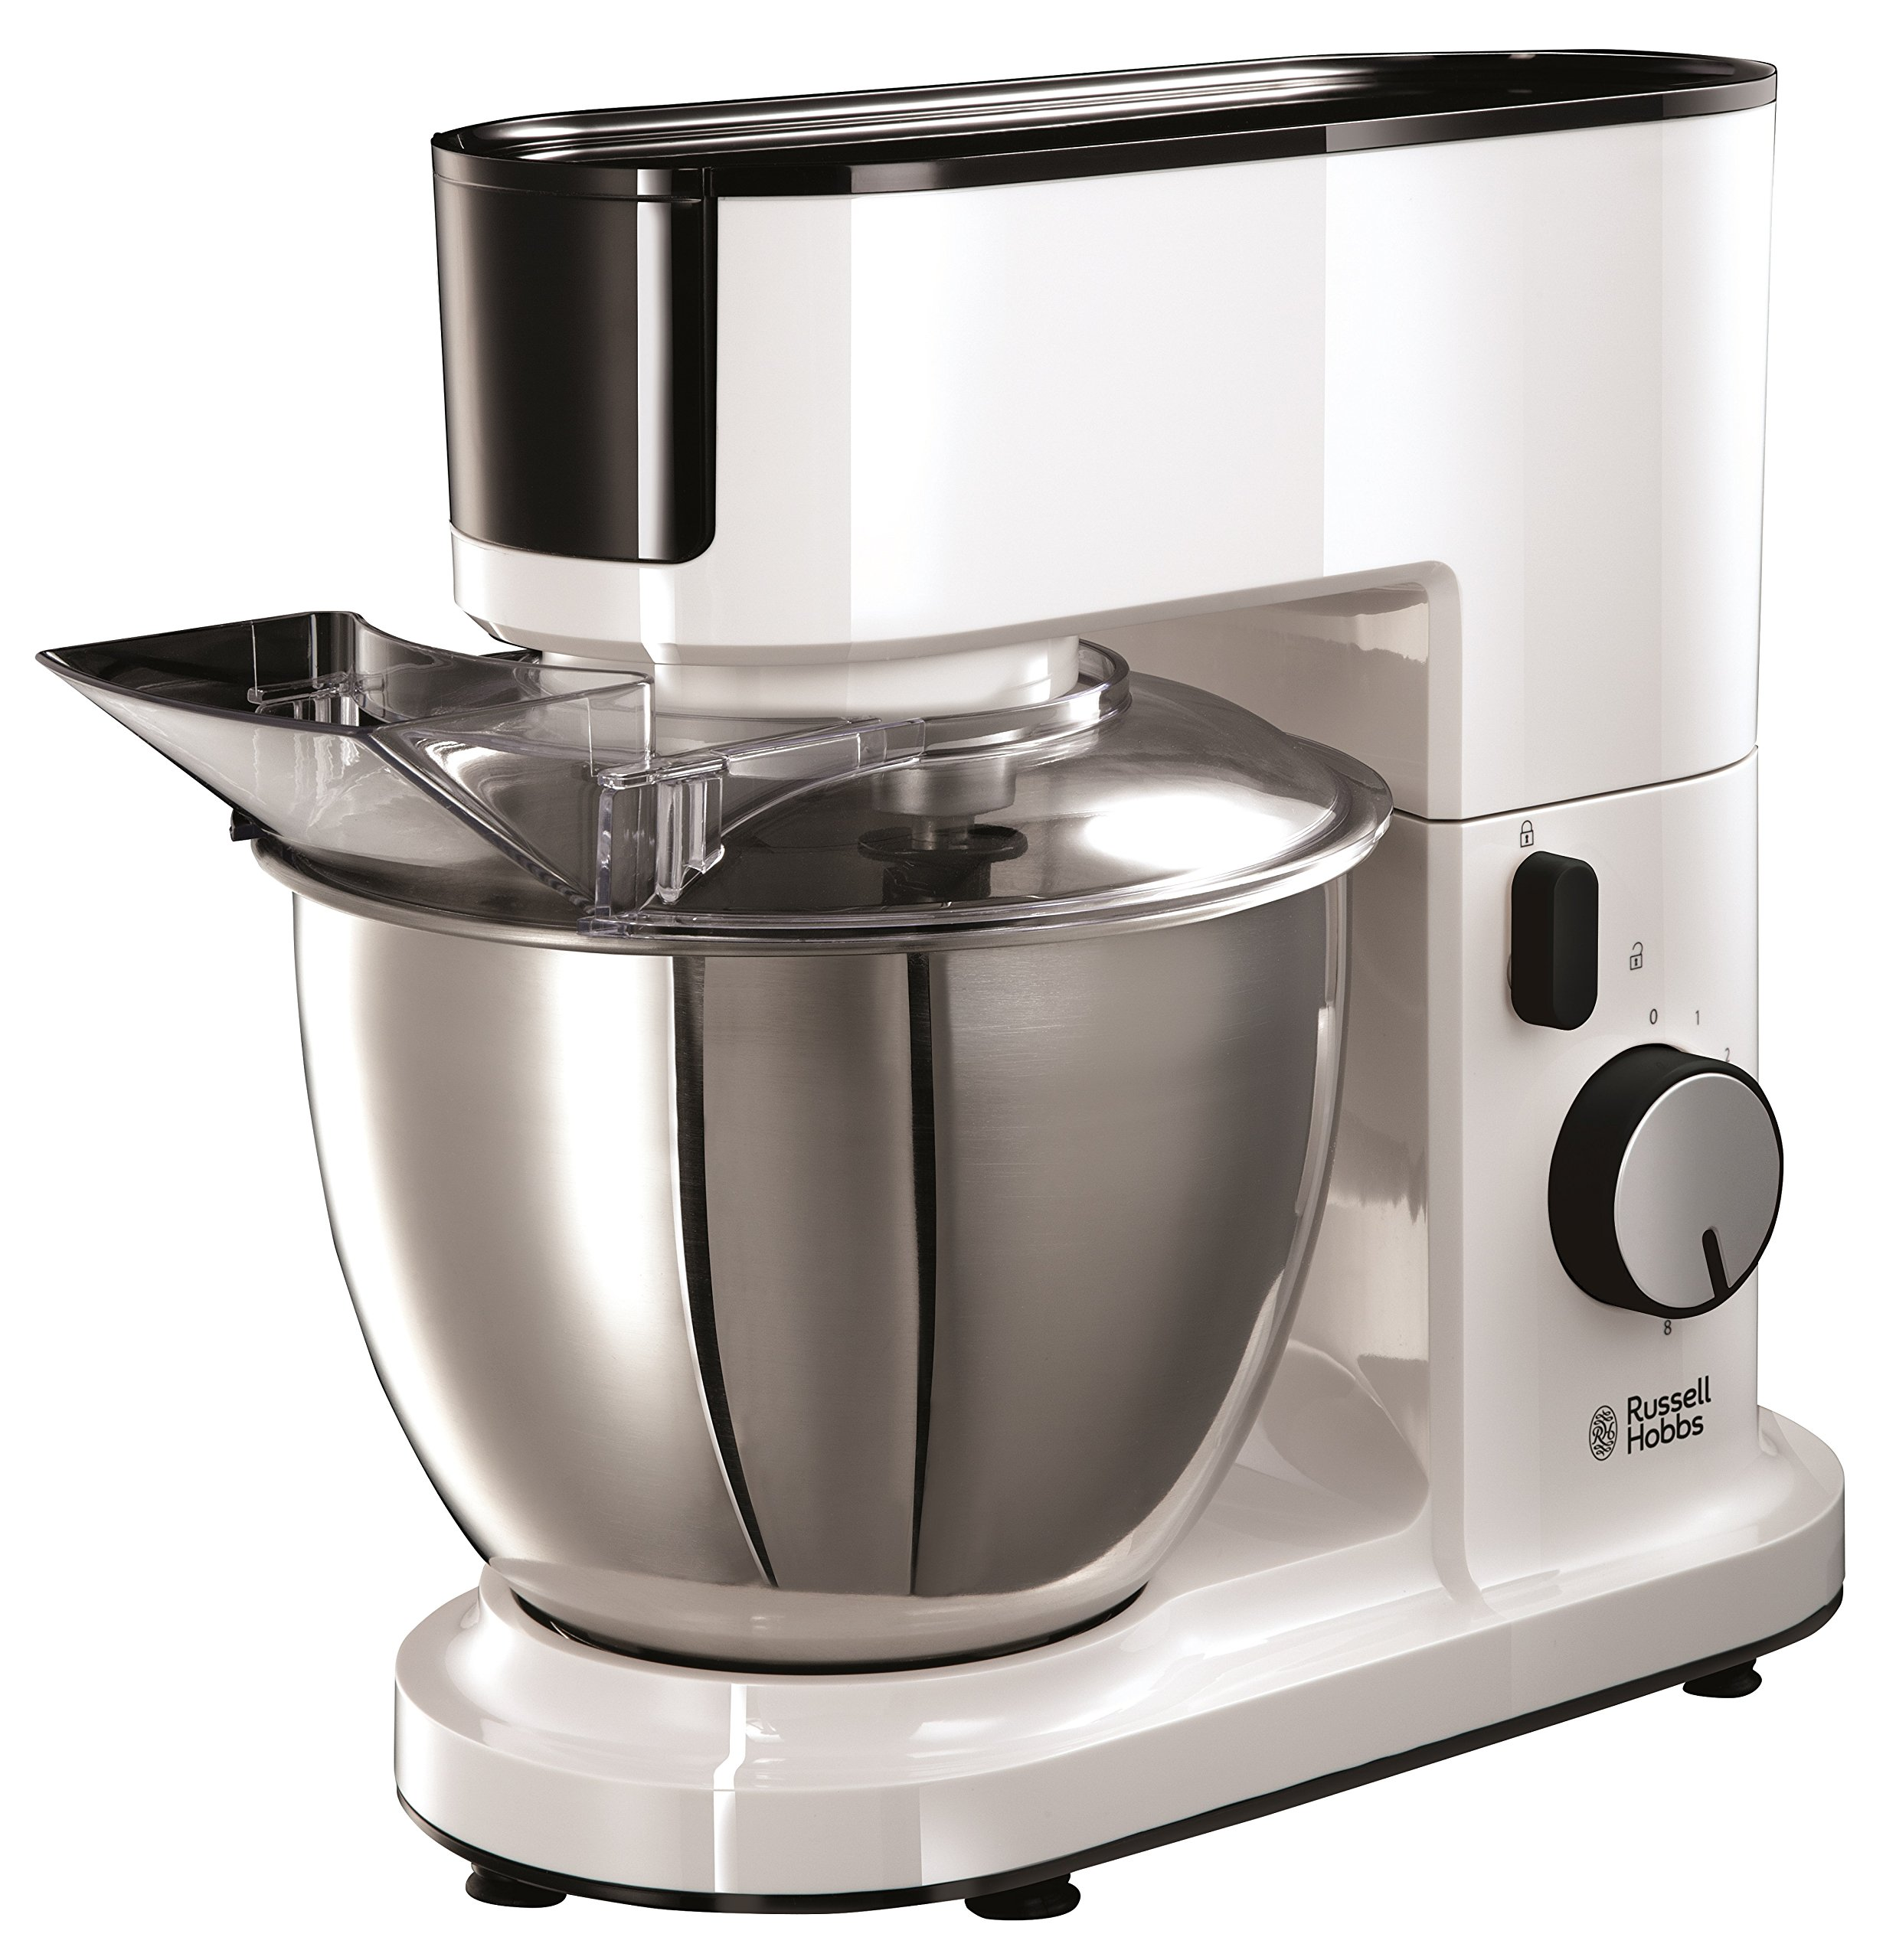 Russell Hobbs Aura Kitchen Machine White 20355-56 - Robot de cocina: Amazon.es: Hogar